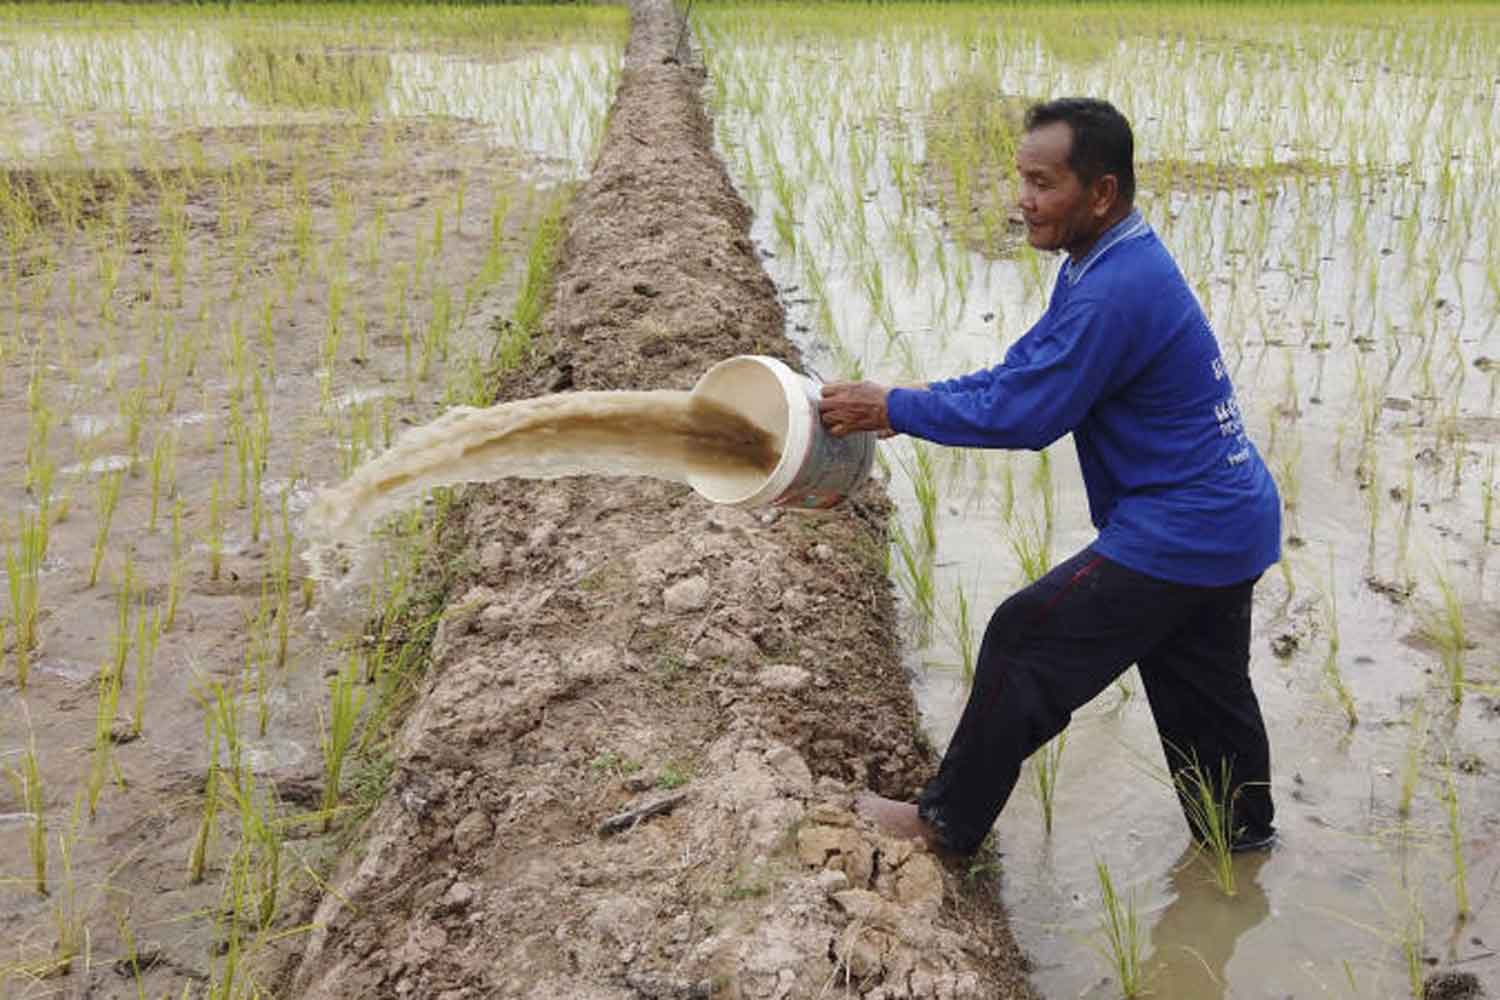 Yao Kaewsikhao tries to save a dry paddy field in Nong Kung Si district of Kalasin province. (Photo by Yongyut Phuphuangphet)